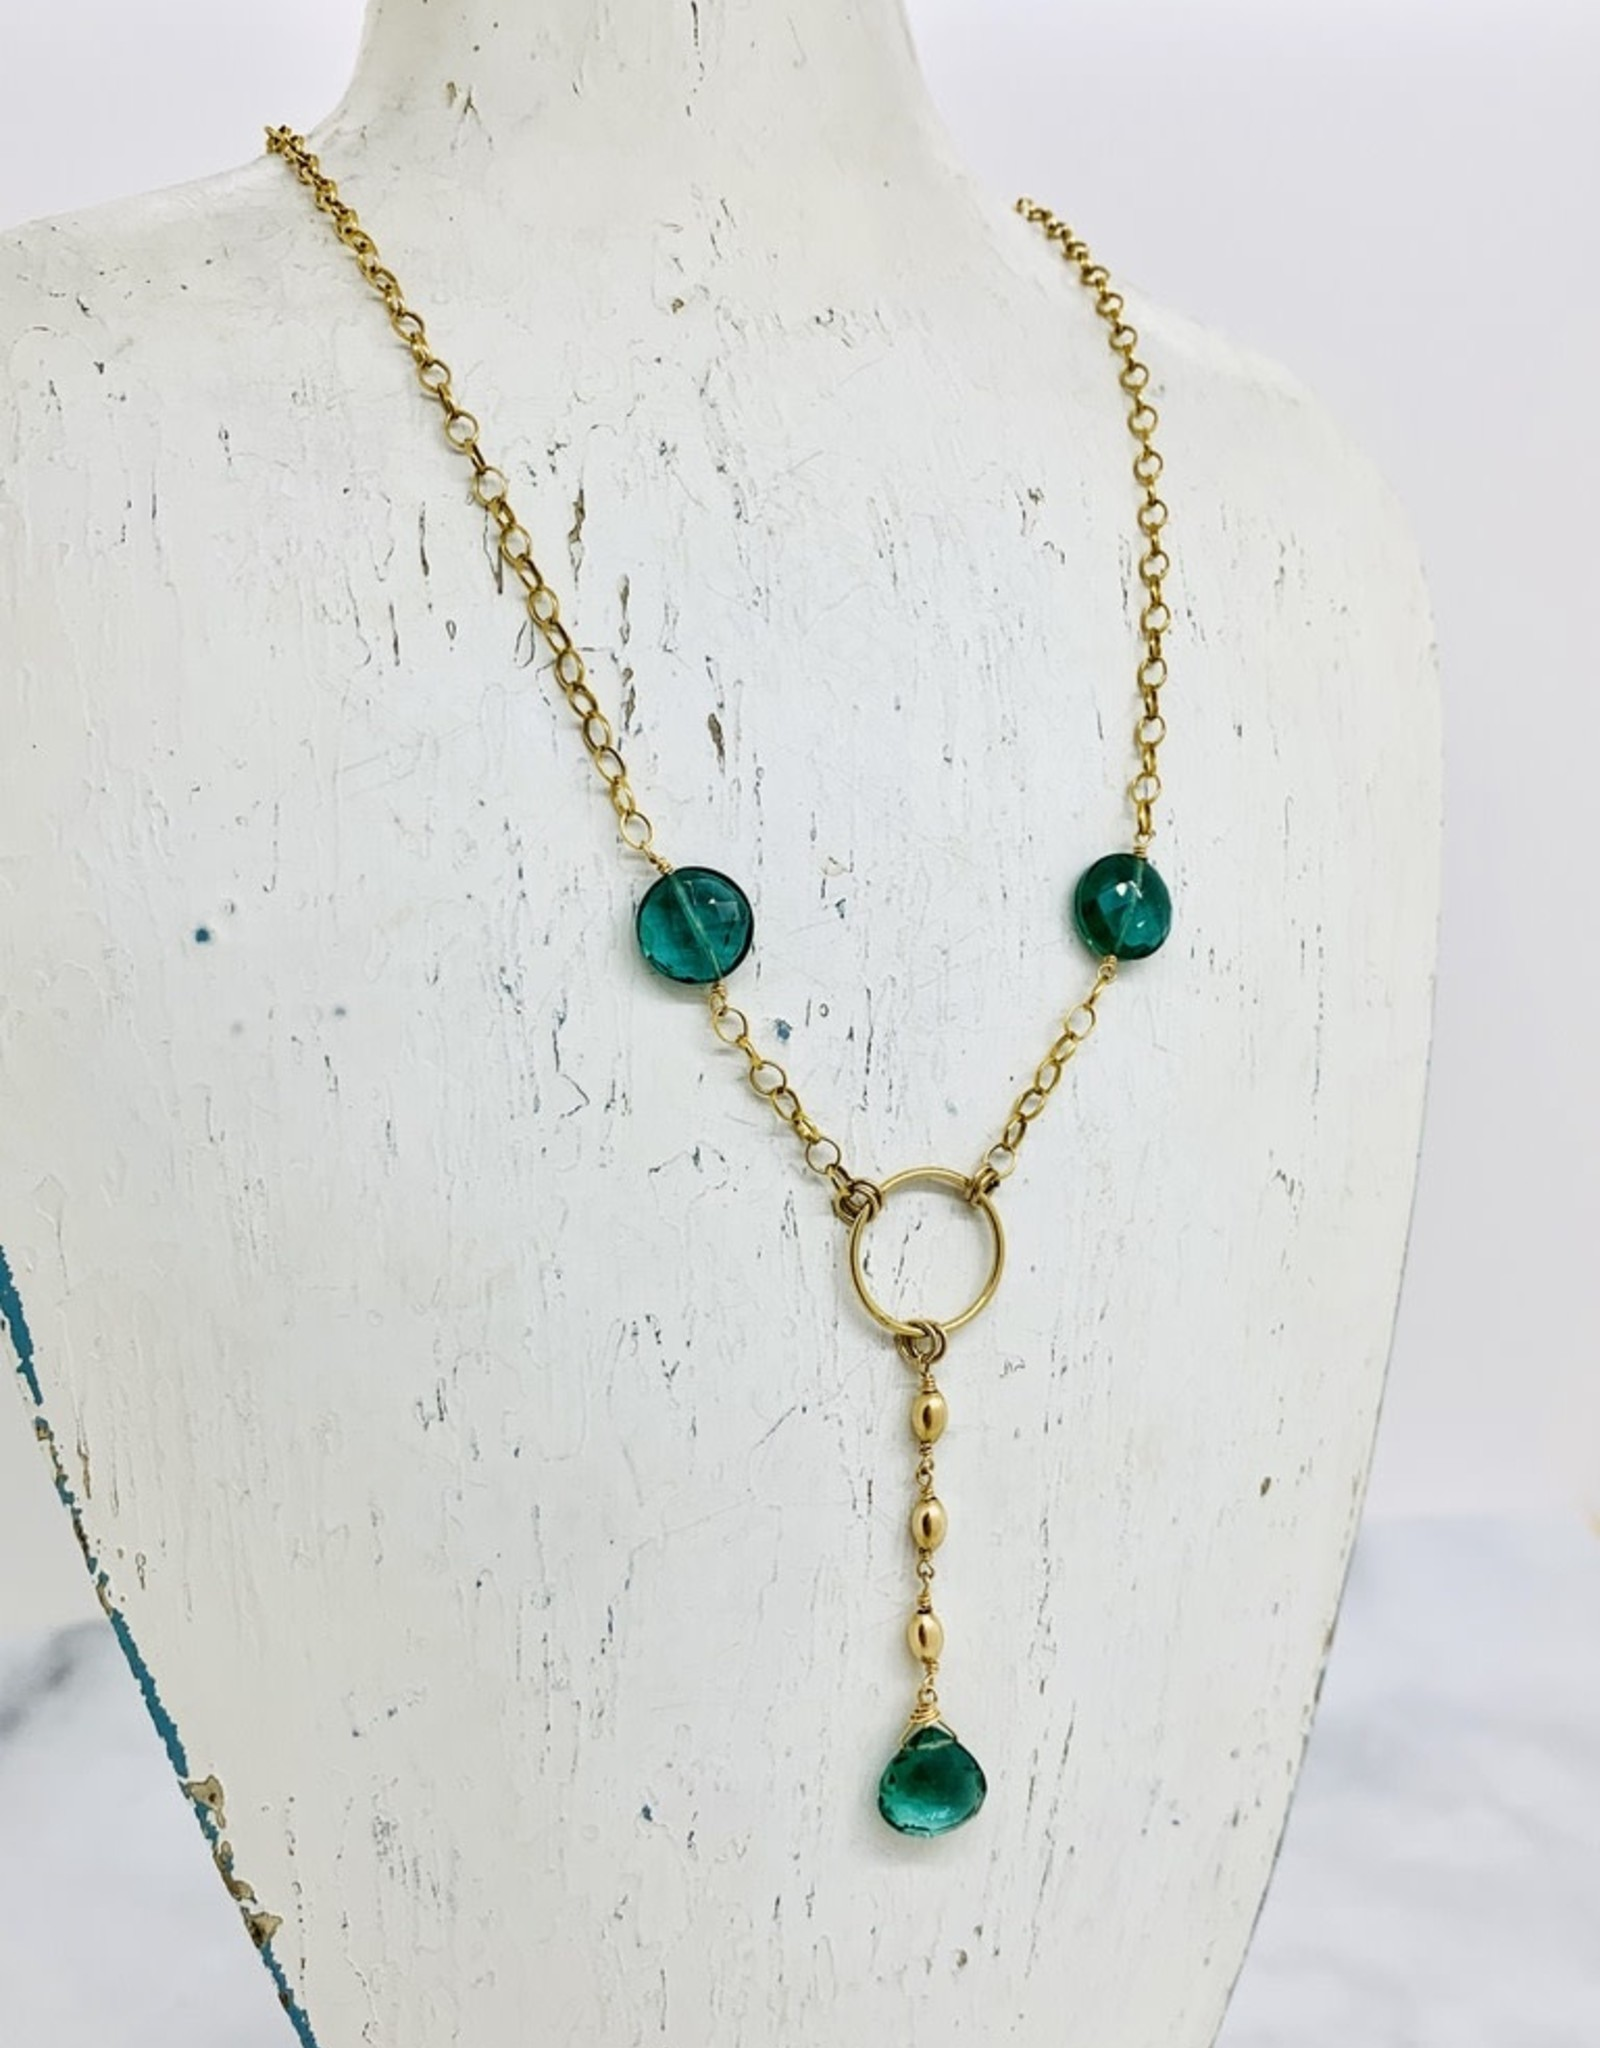 """EVANKNOX Handmade Sterling Silver Necklace with y: 2 green hydro coins, briolette, 3 14 k g.f. rice dangle, 14 k g.f. ring, up to 18"""", pendant is 2.25"""""""